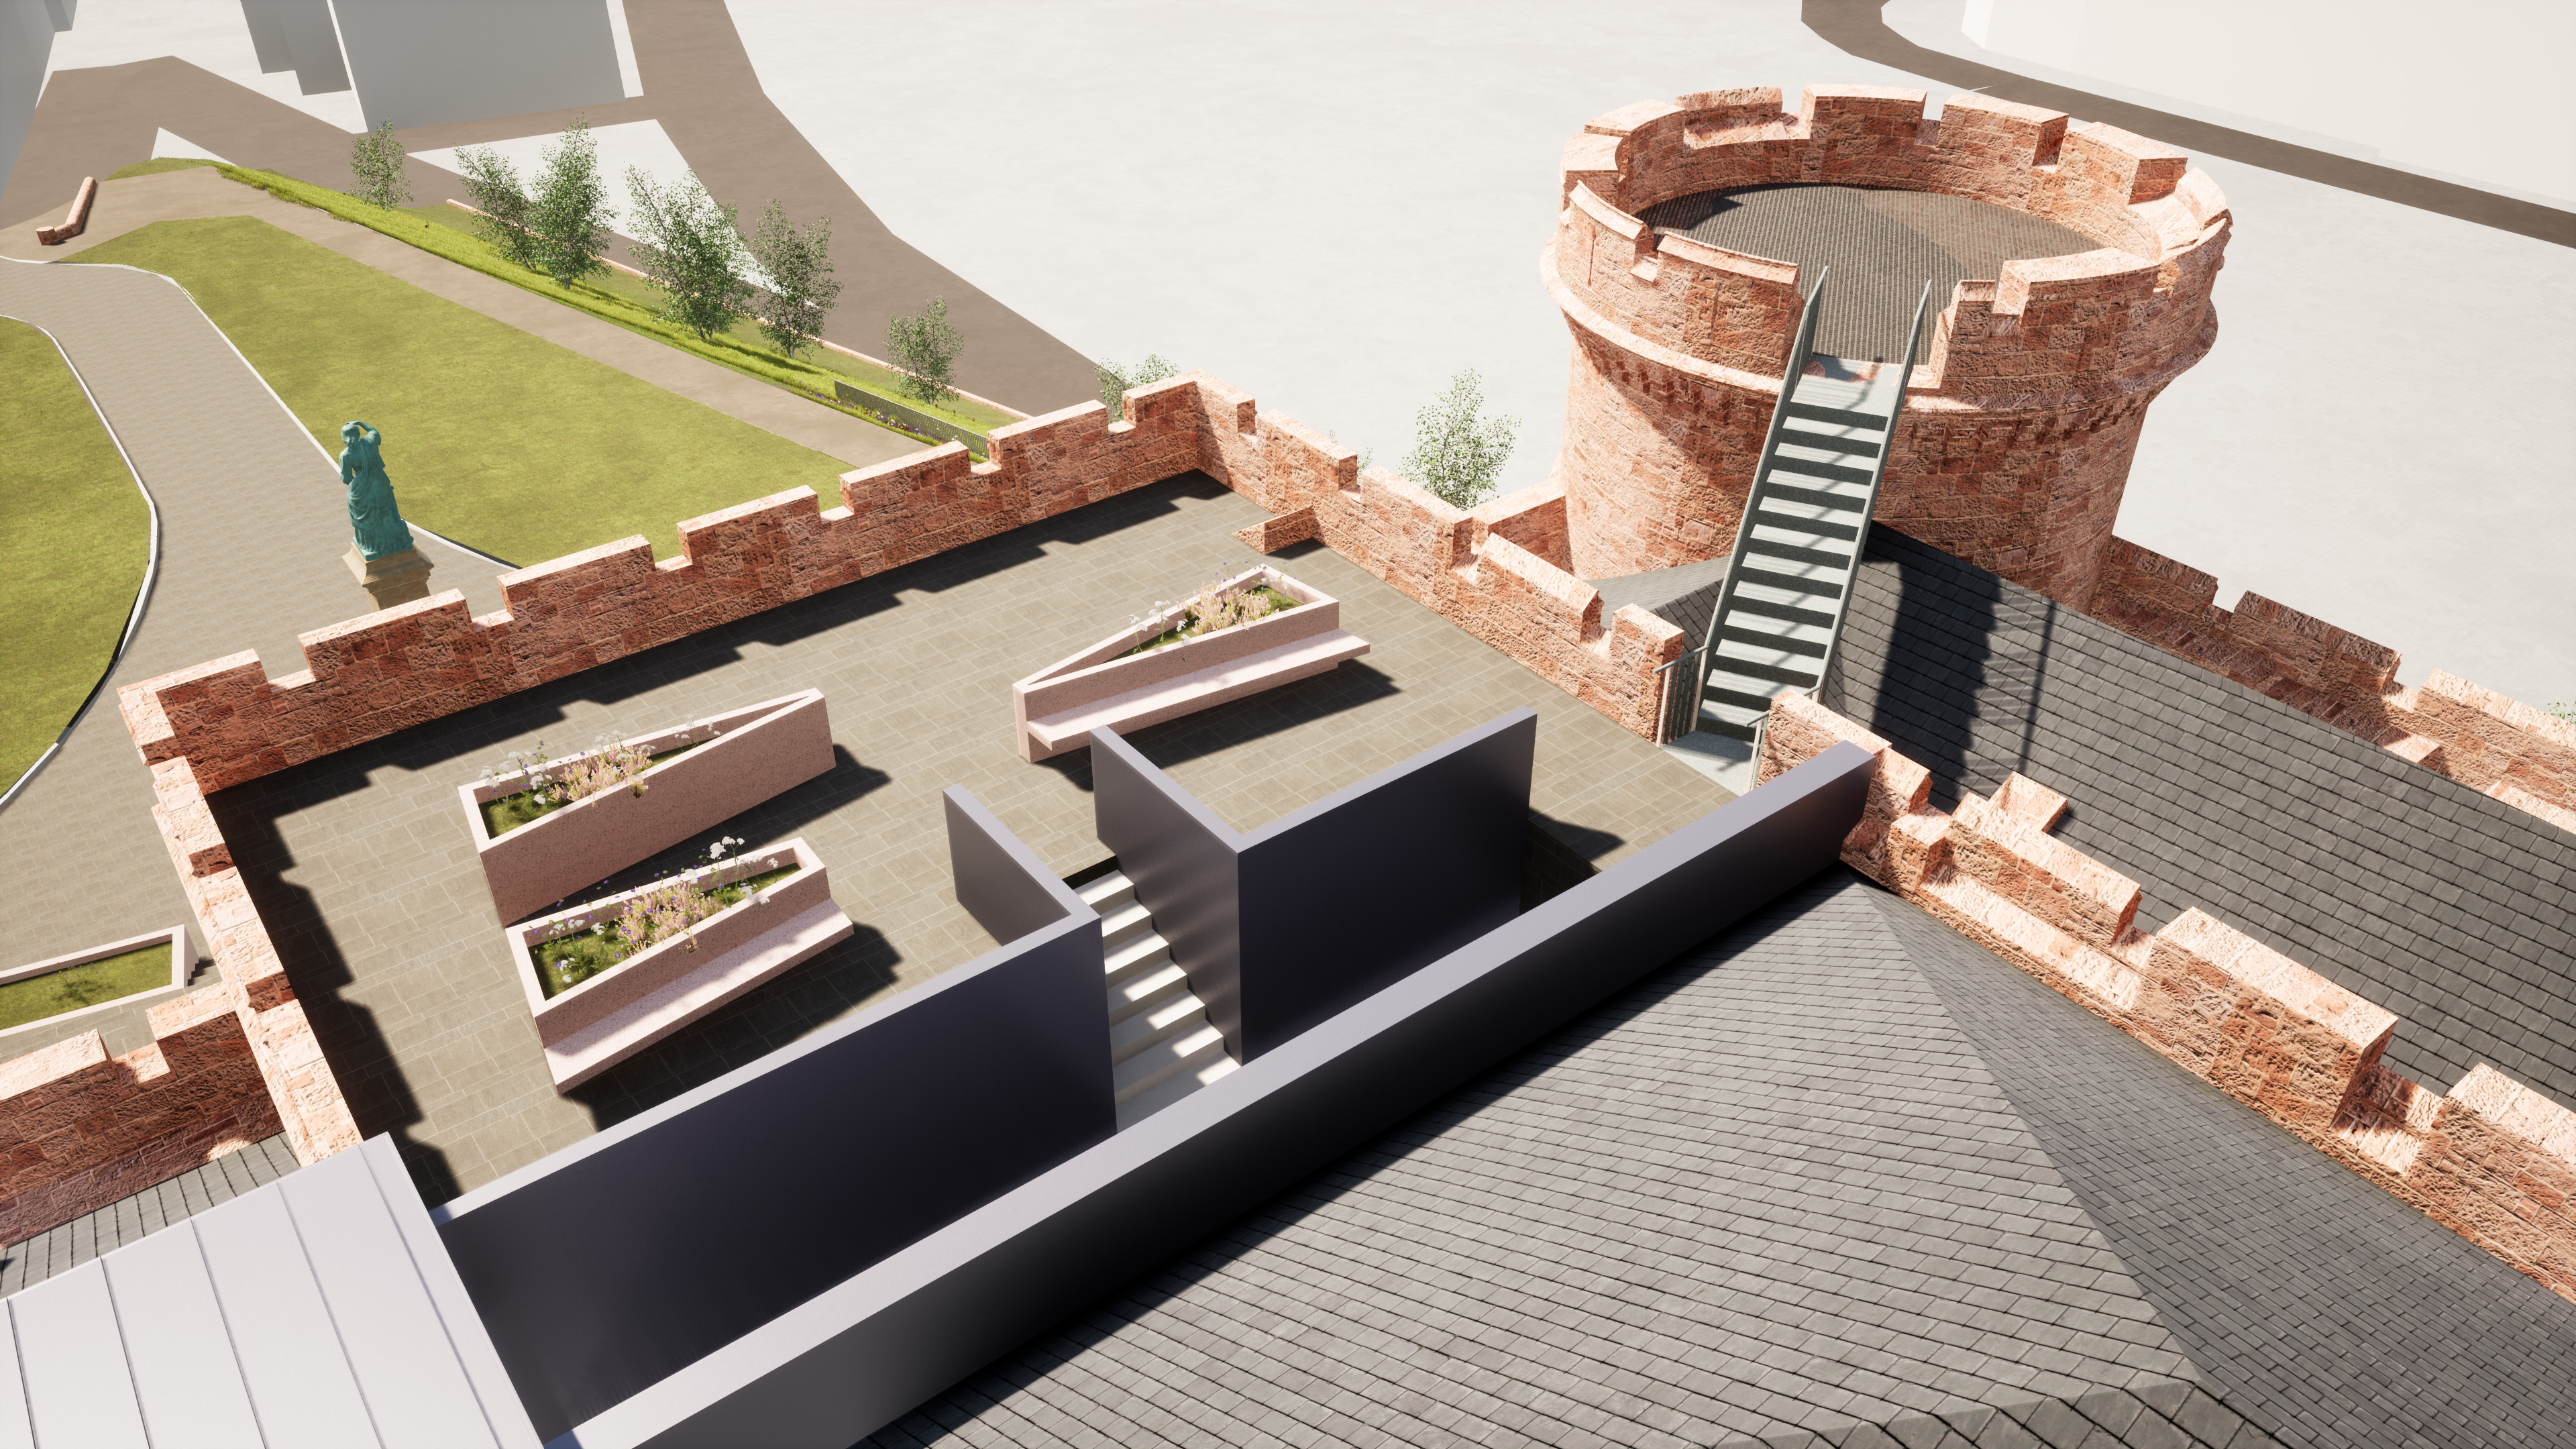 LDN Architects – impression of South Tower Roof Terrace